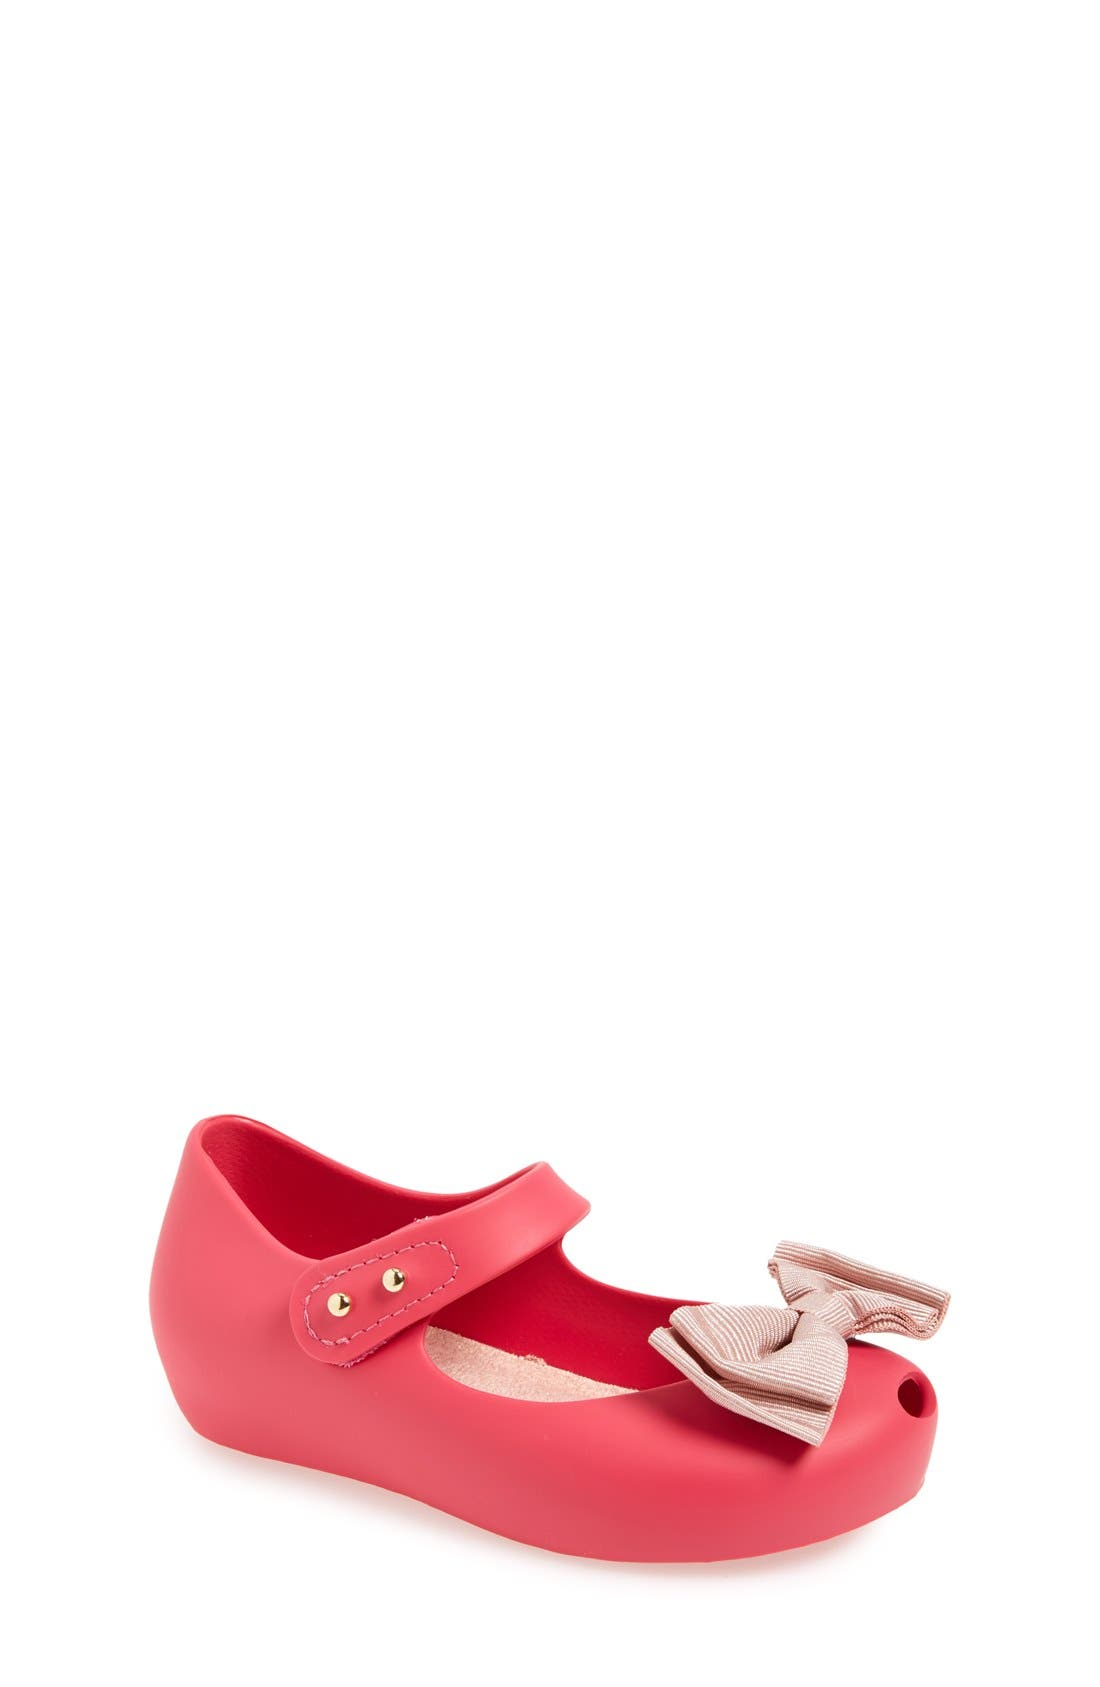 MINI MELISSA 'Ultragirl Sweet' Mary Jane Flat